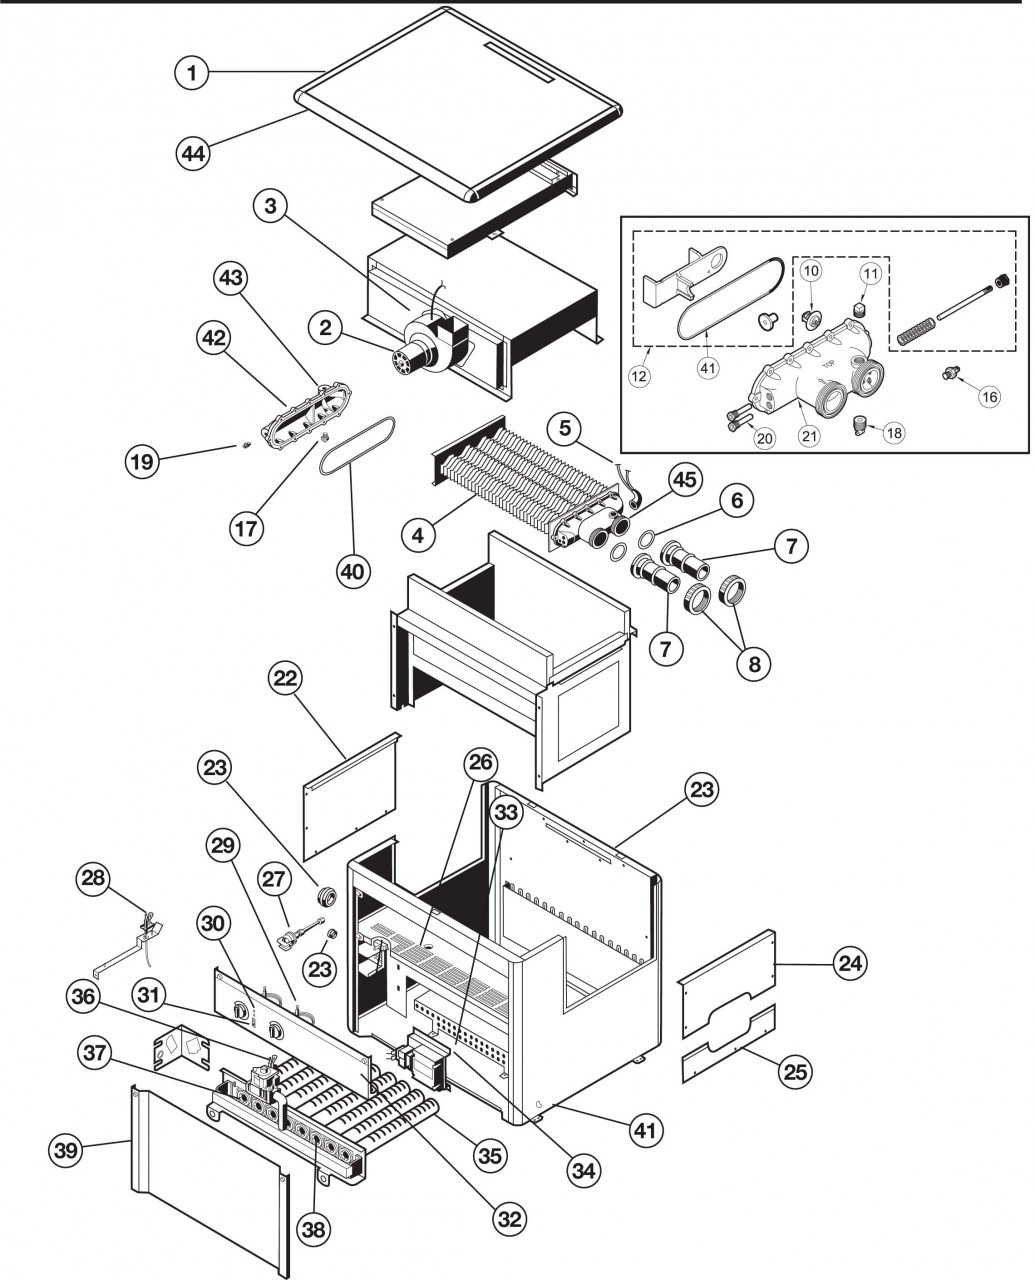 96 F250 Wiring Diagram Sd 1997 F350 Fuel 99 Fuse Box 1996 Ford F 350 Gas Engine H 2 Another Blog About